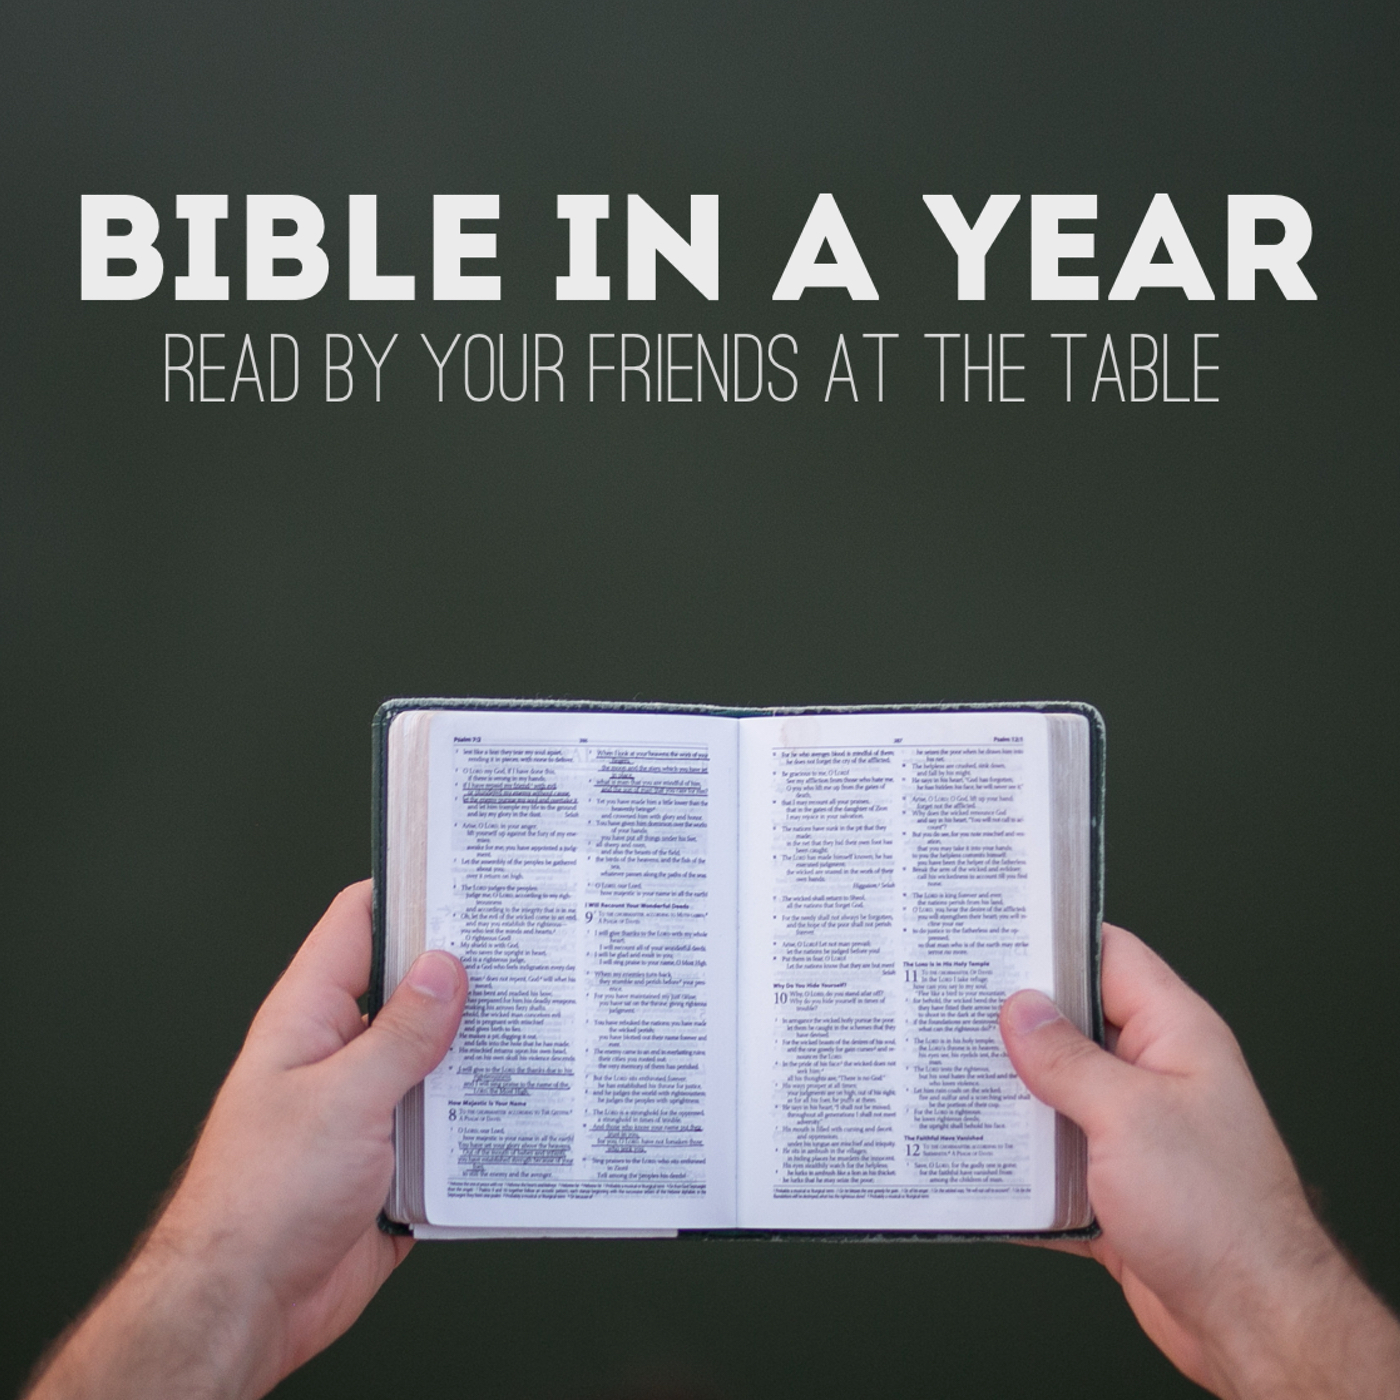 Bible in a Year - the table.